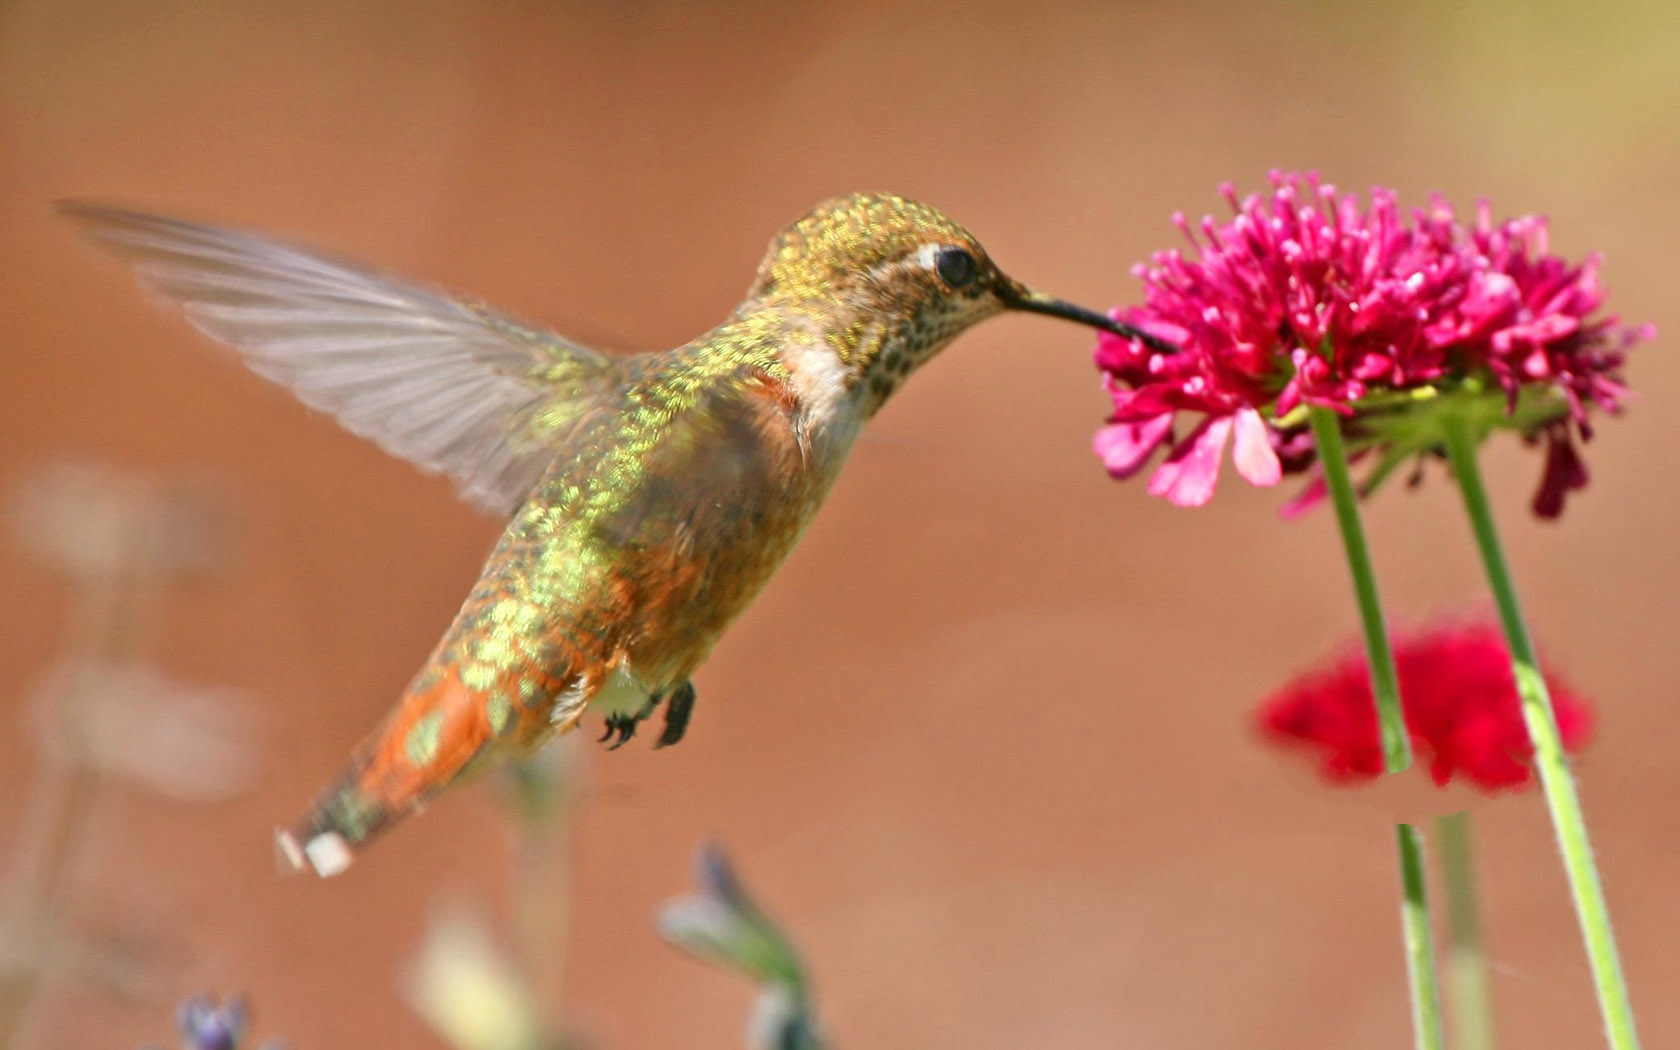 click to free download the wallpaper--Hummingbird Picture, Love Being Close to Flowers, Fly Toward It 1680X1050 free wallpaper download